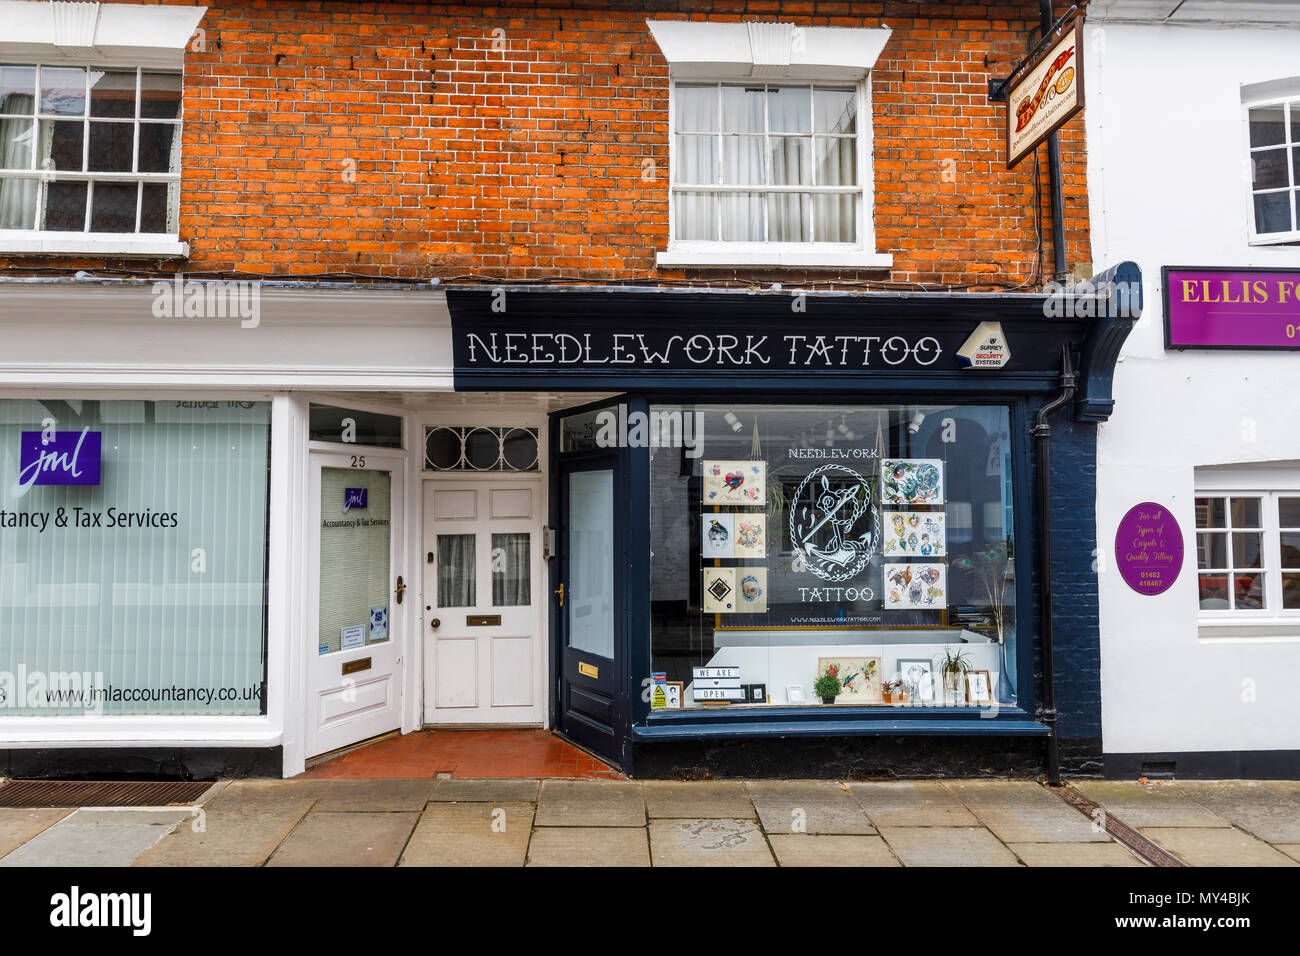 Needlework Tattoo, a tattoo parlour shop for tattooing in Godalming, a small historic market town near Guildford, Surrey, southeast England, UK - Stock Image